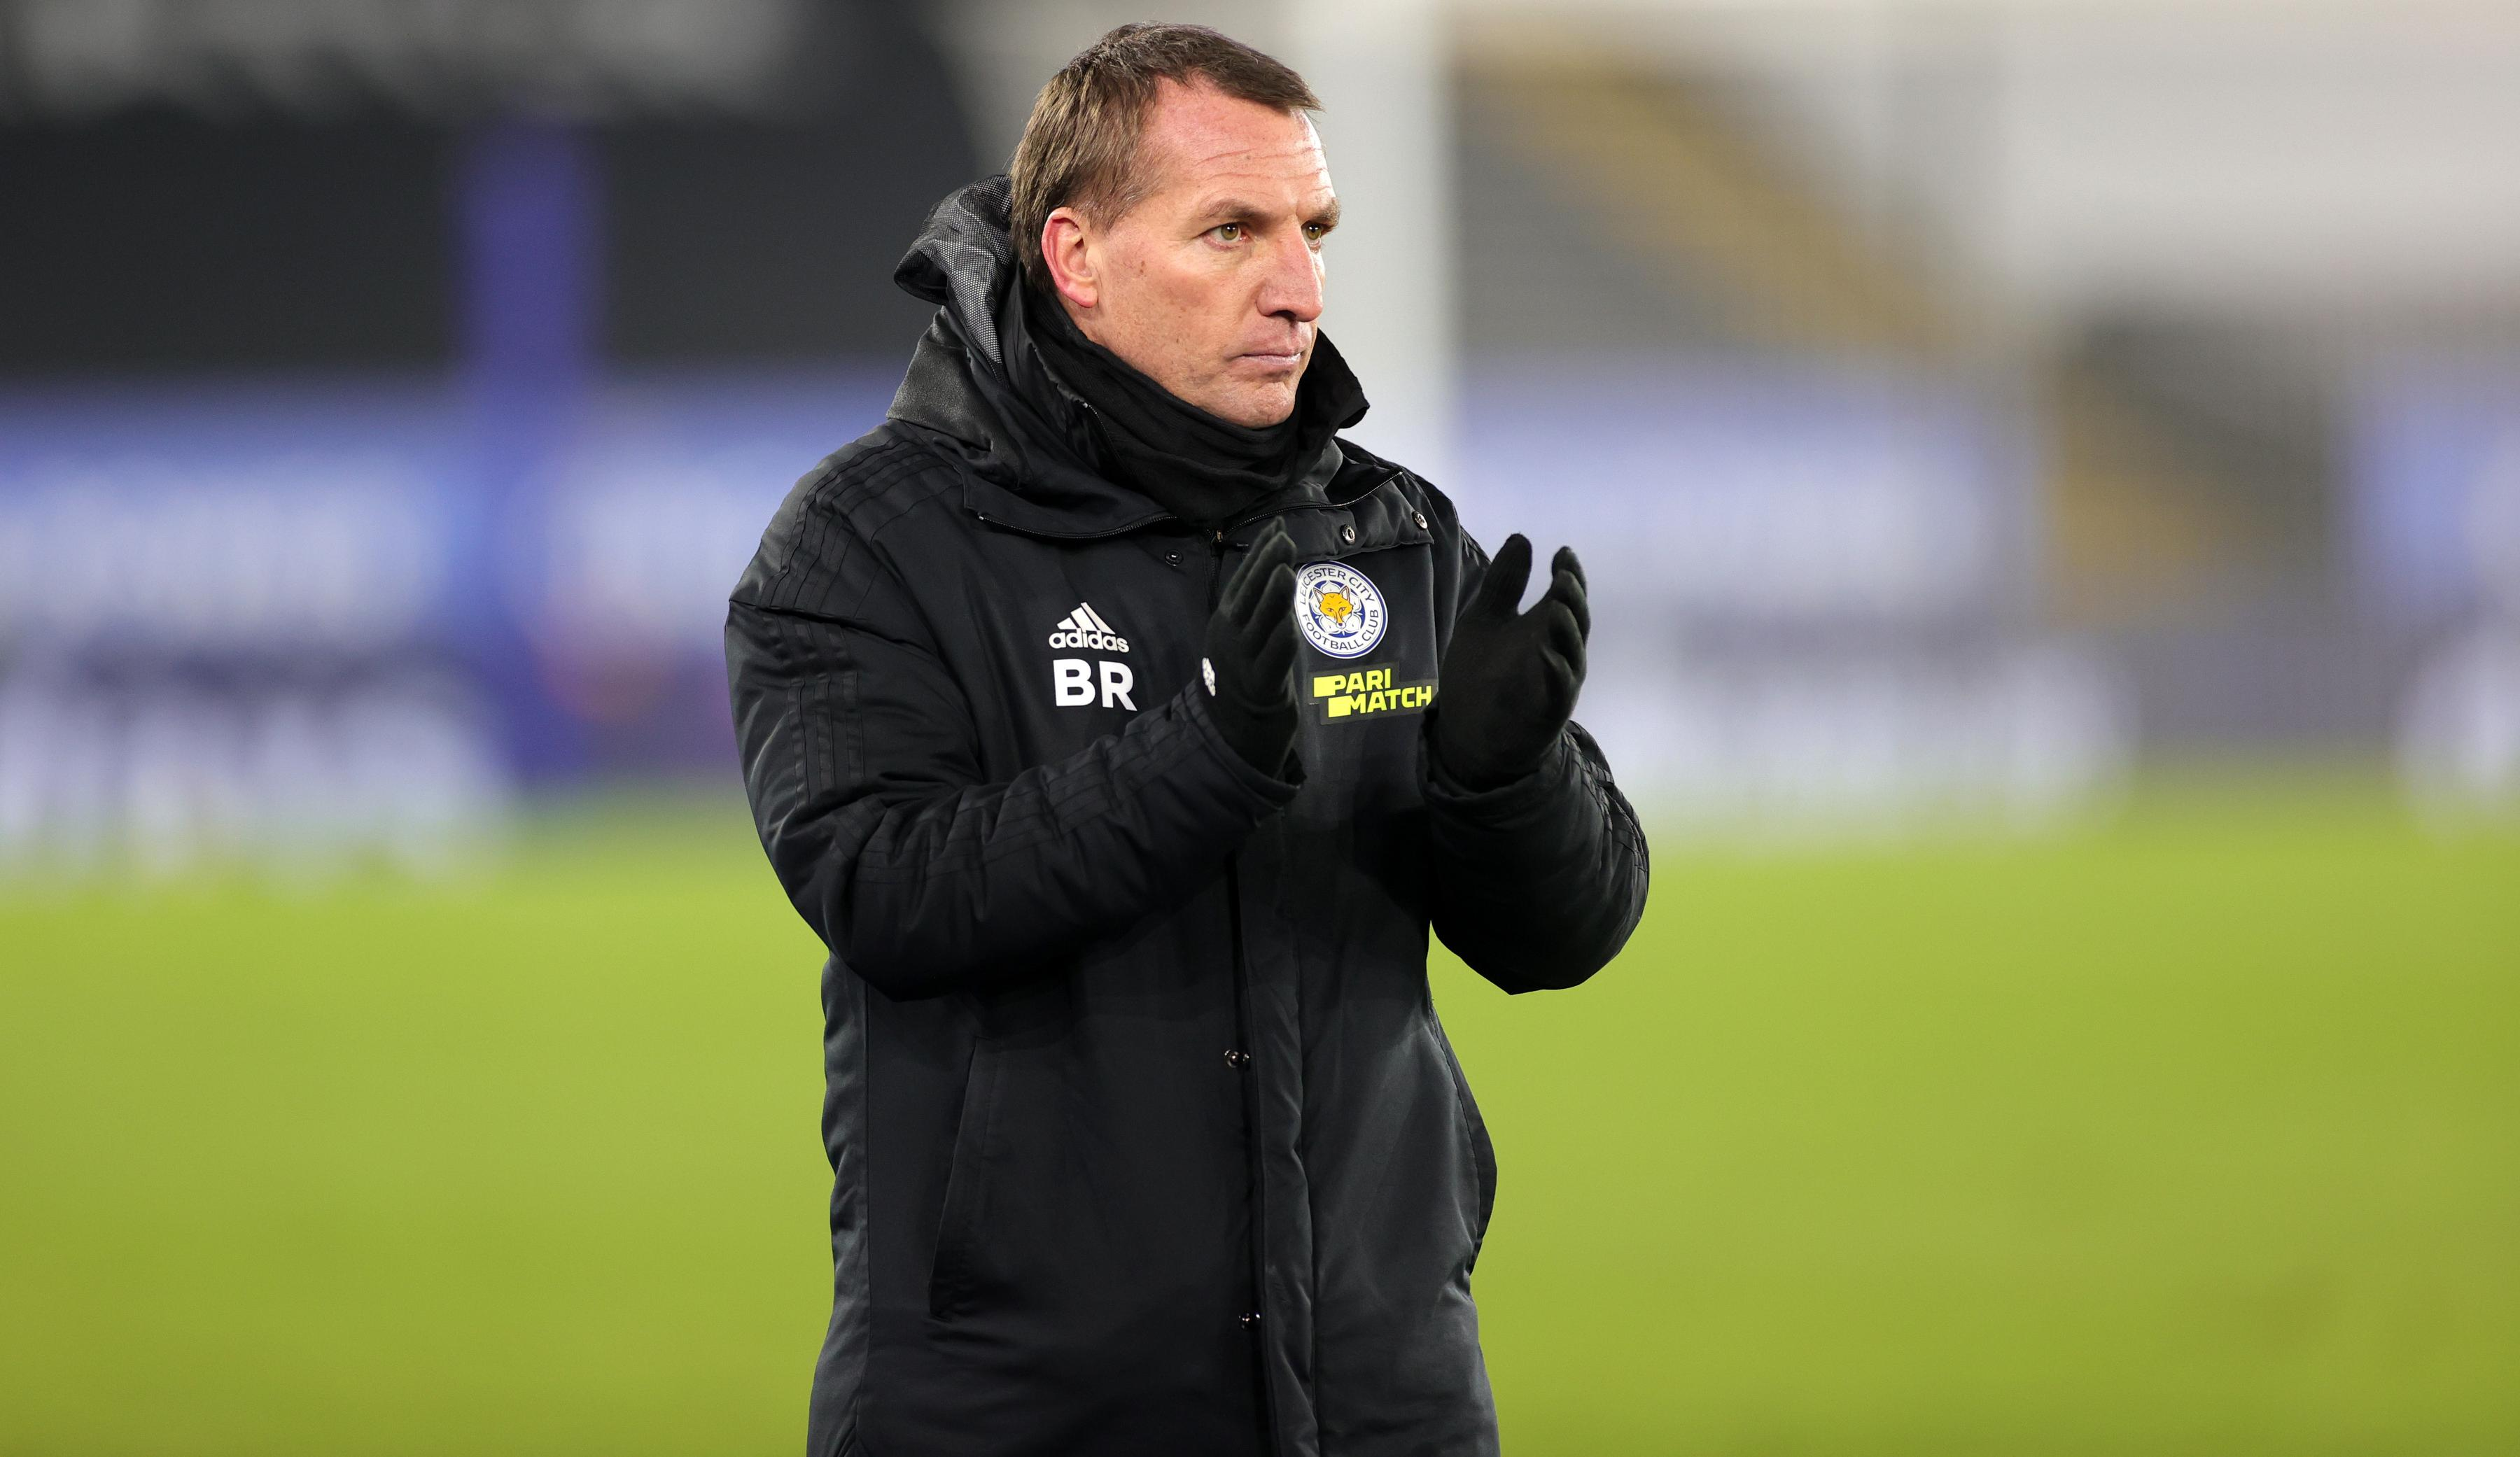 Leicester Rewarded For Quick Thinking, Says Rodgers - Leicester City